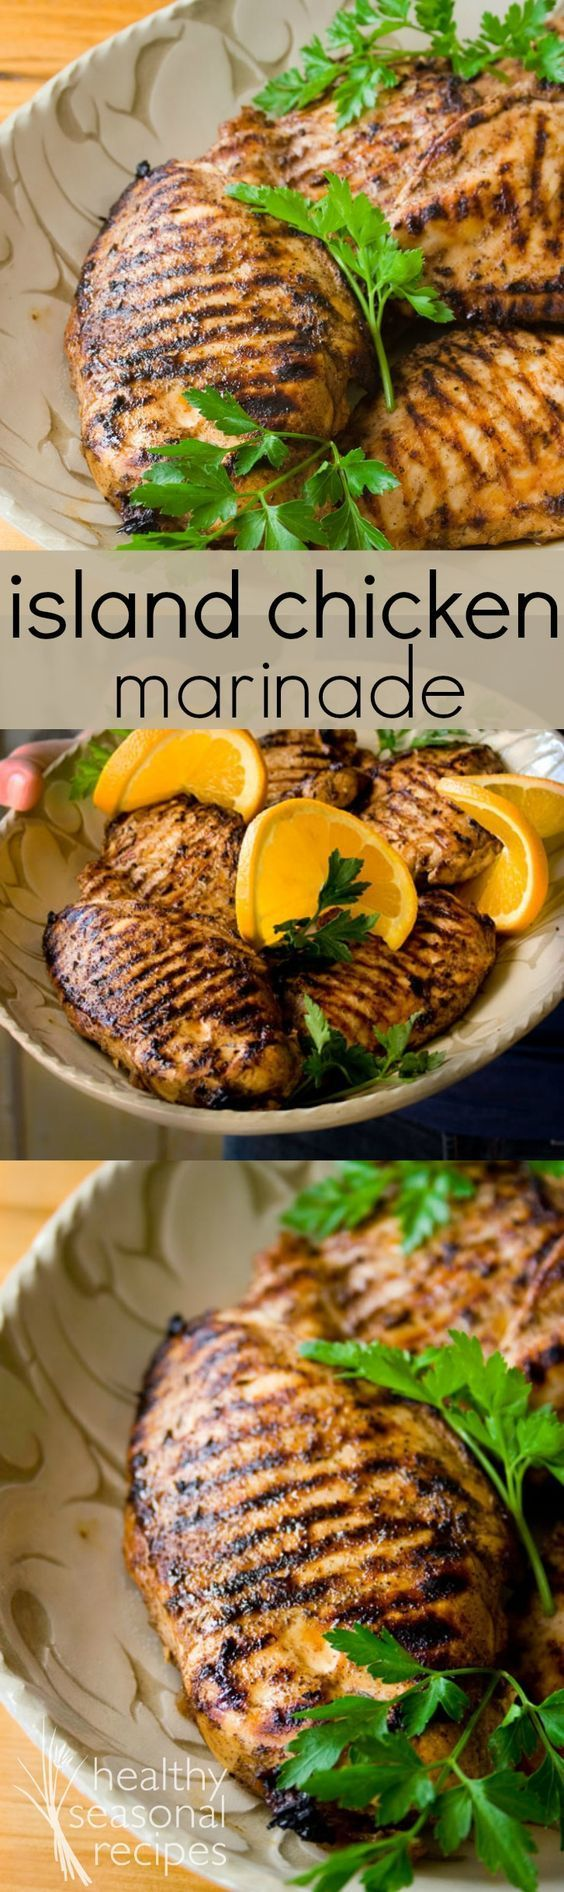 Isabel's Island Chicken Marinade, this is my BEST chicken marinade ever!  - Healthy Seasonal Recipes